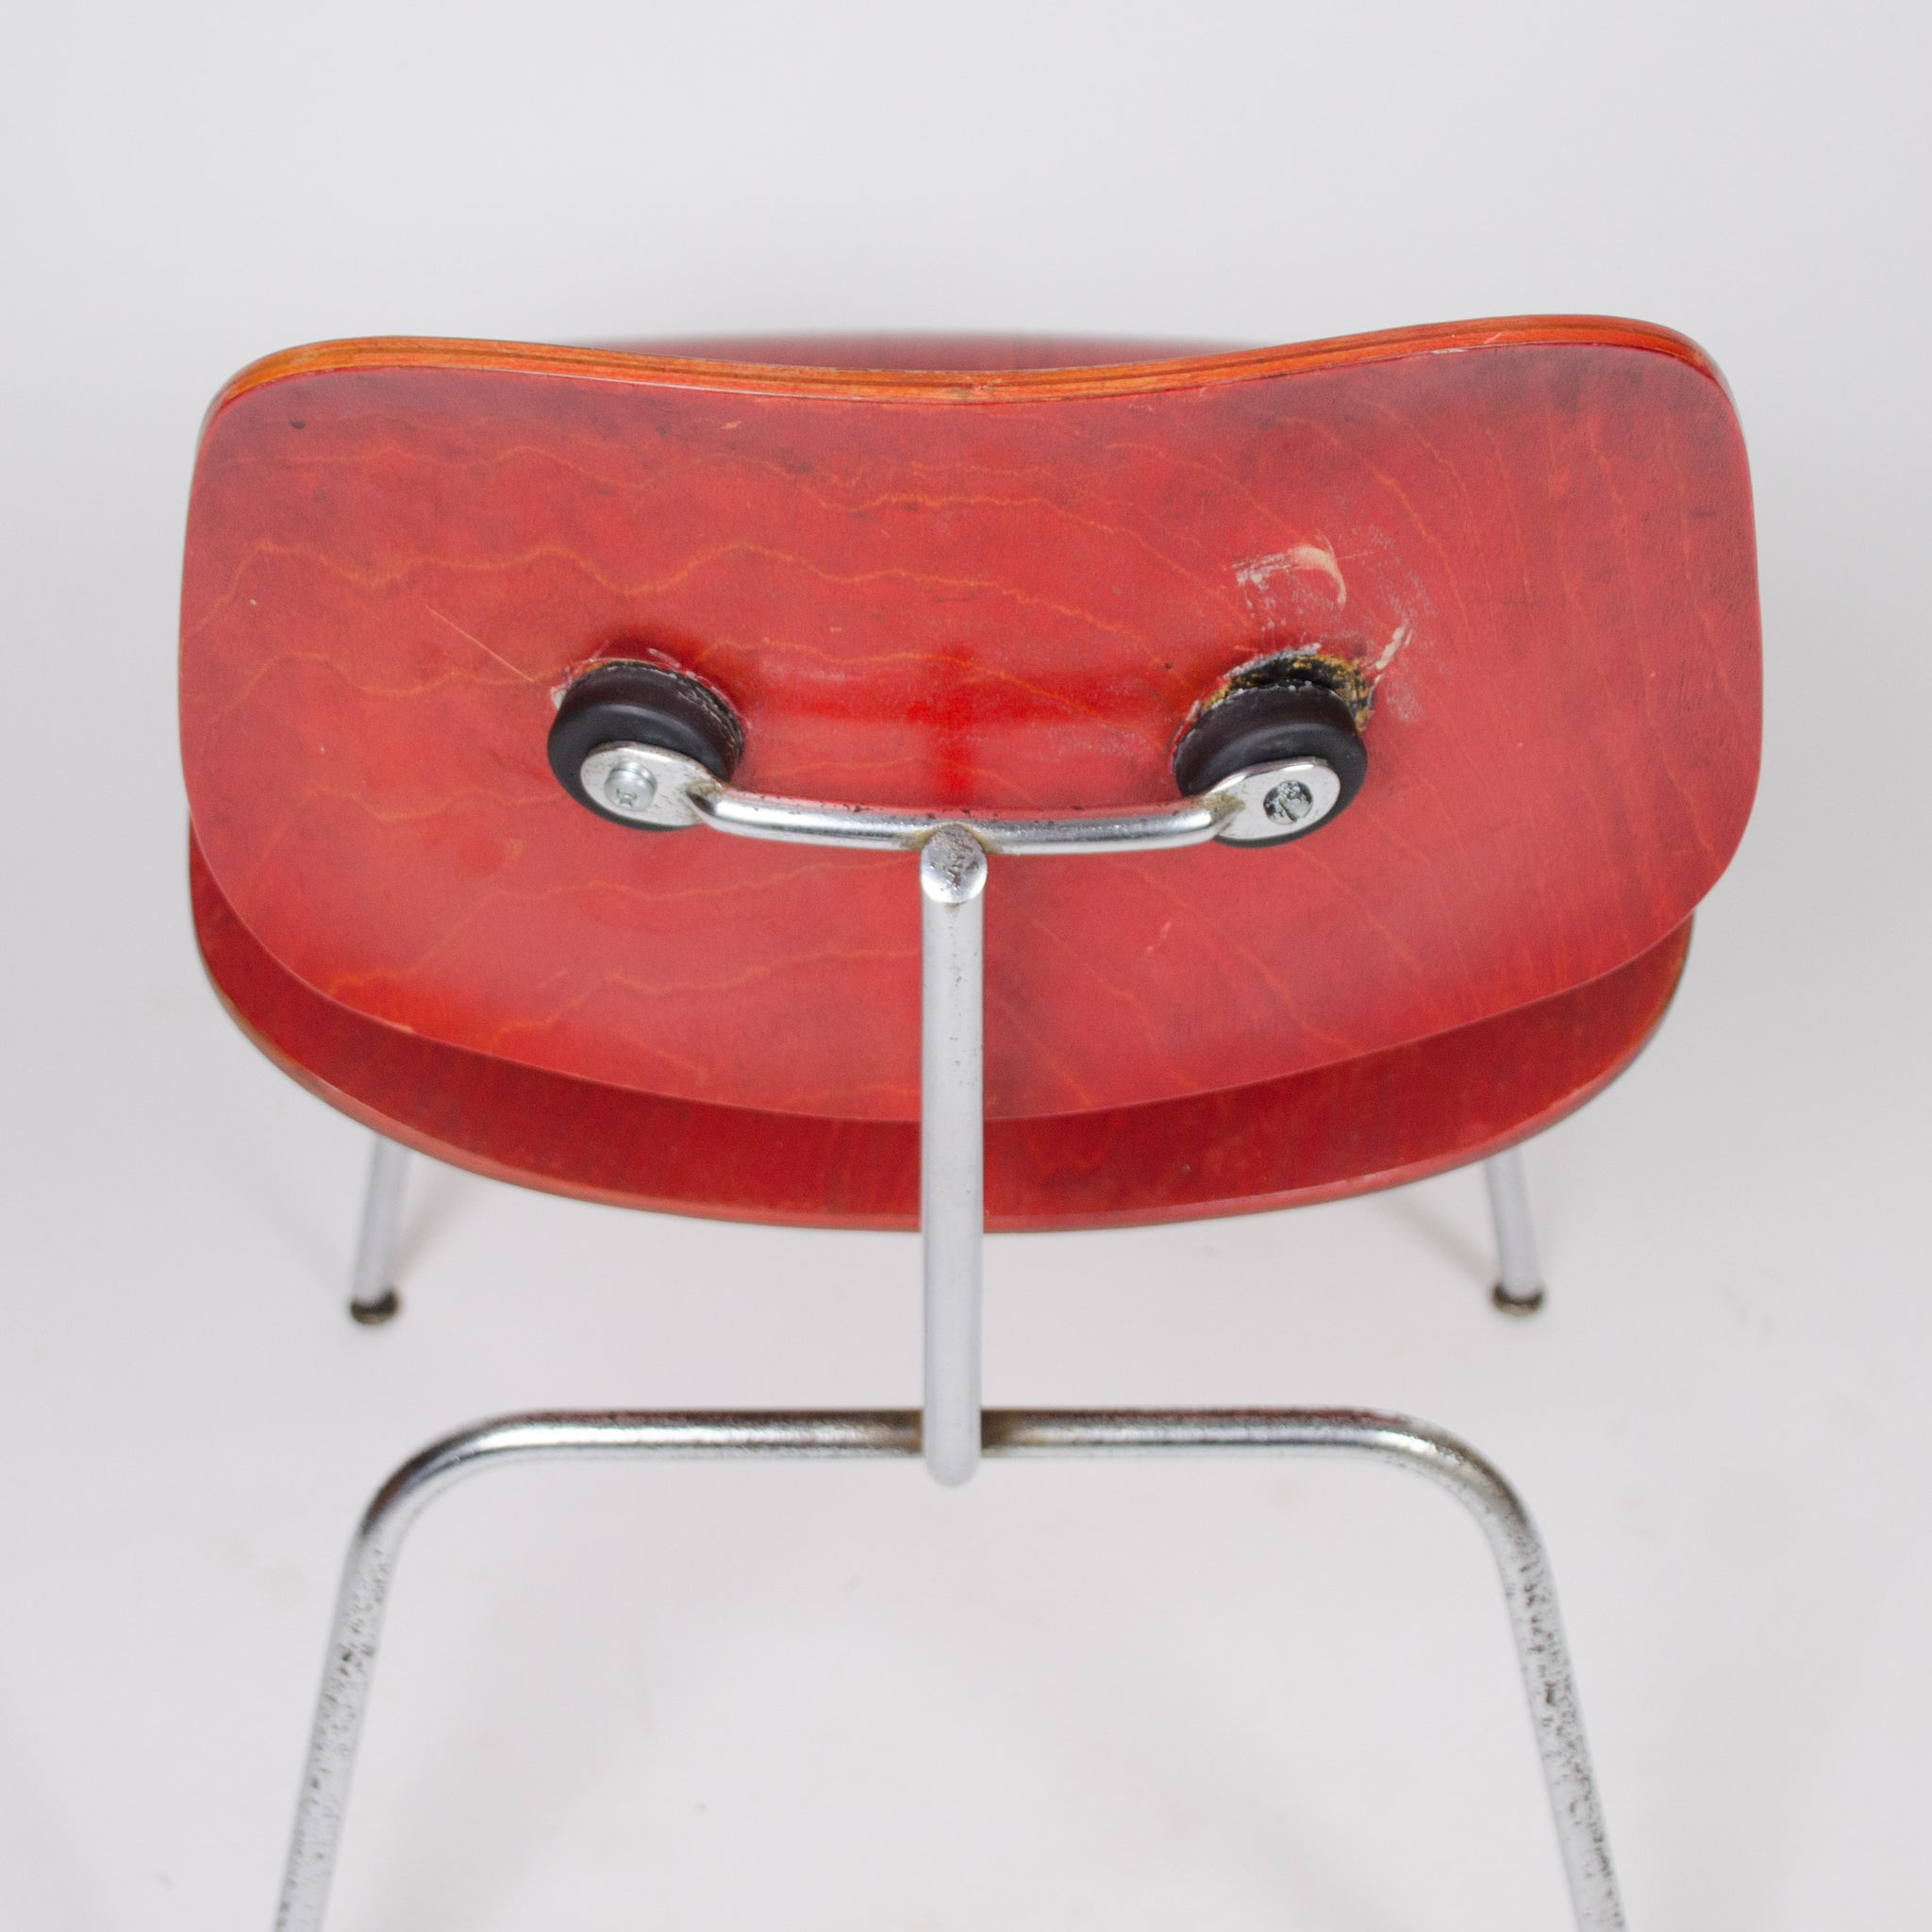 Eames Evans Herman Miller 1940's DCM Dining Chairs Red Aniline Dye 1x Available